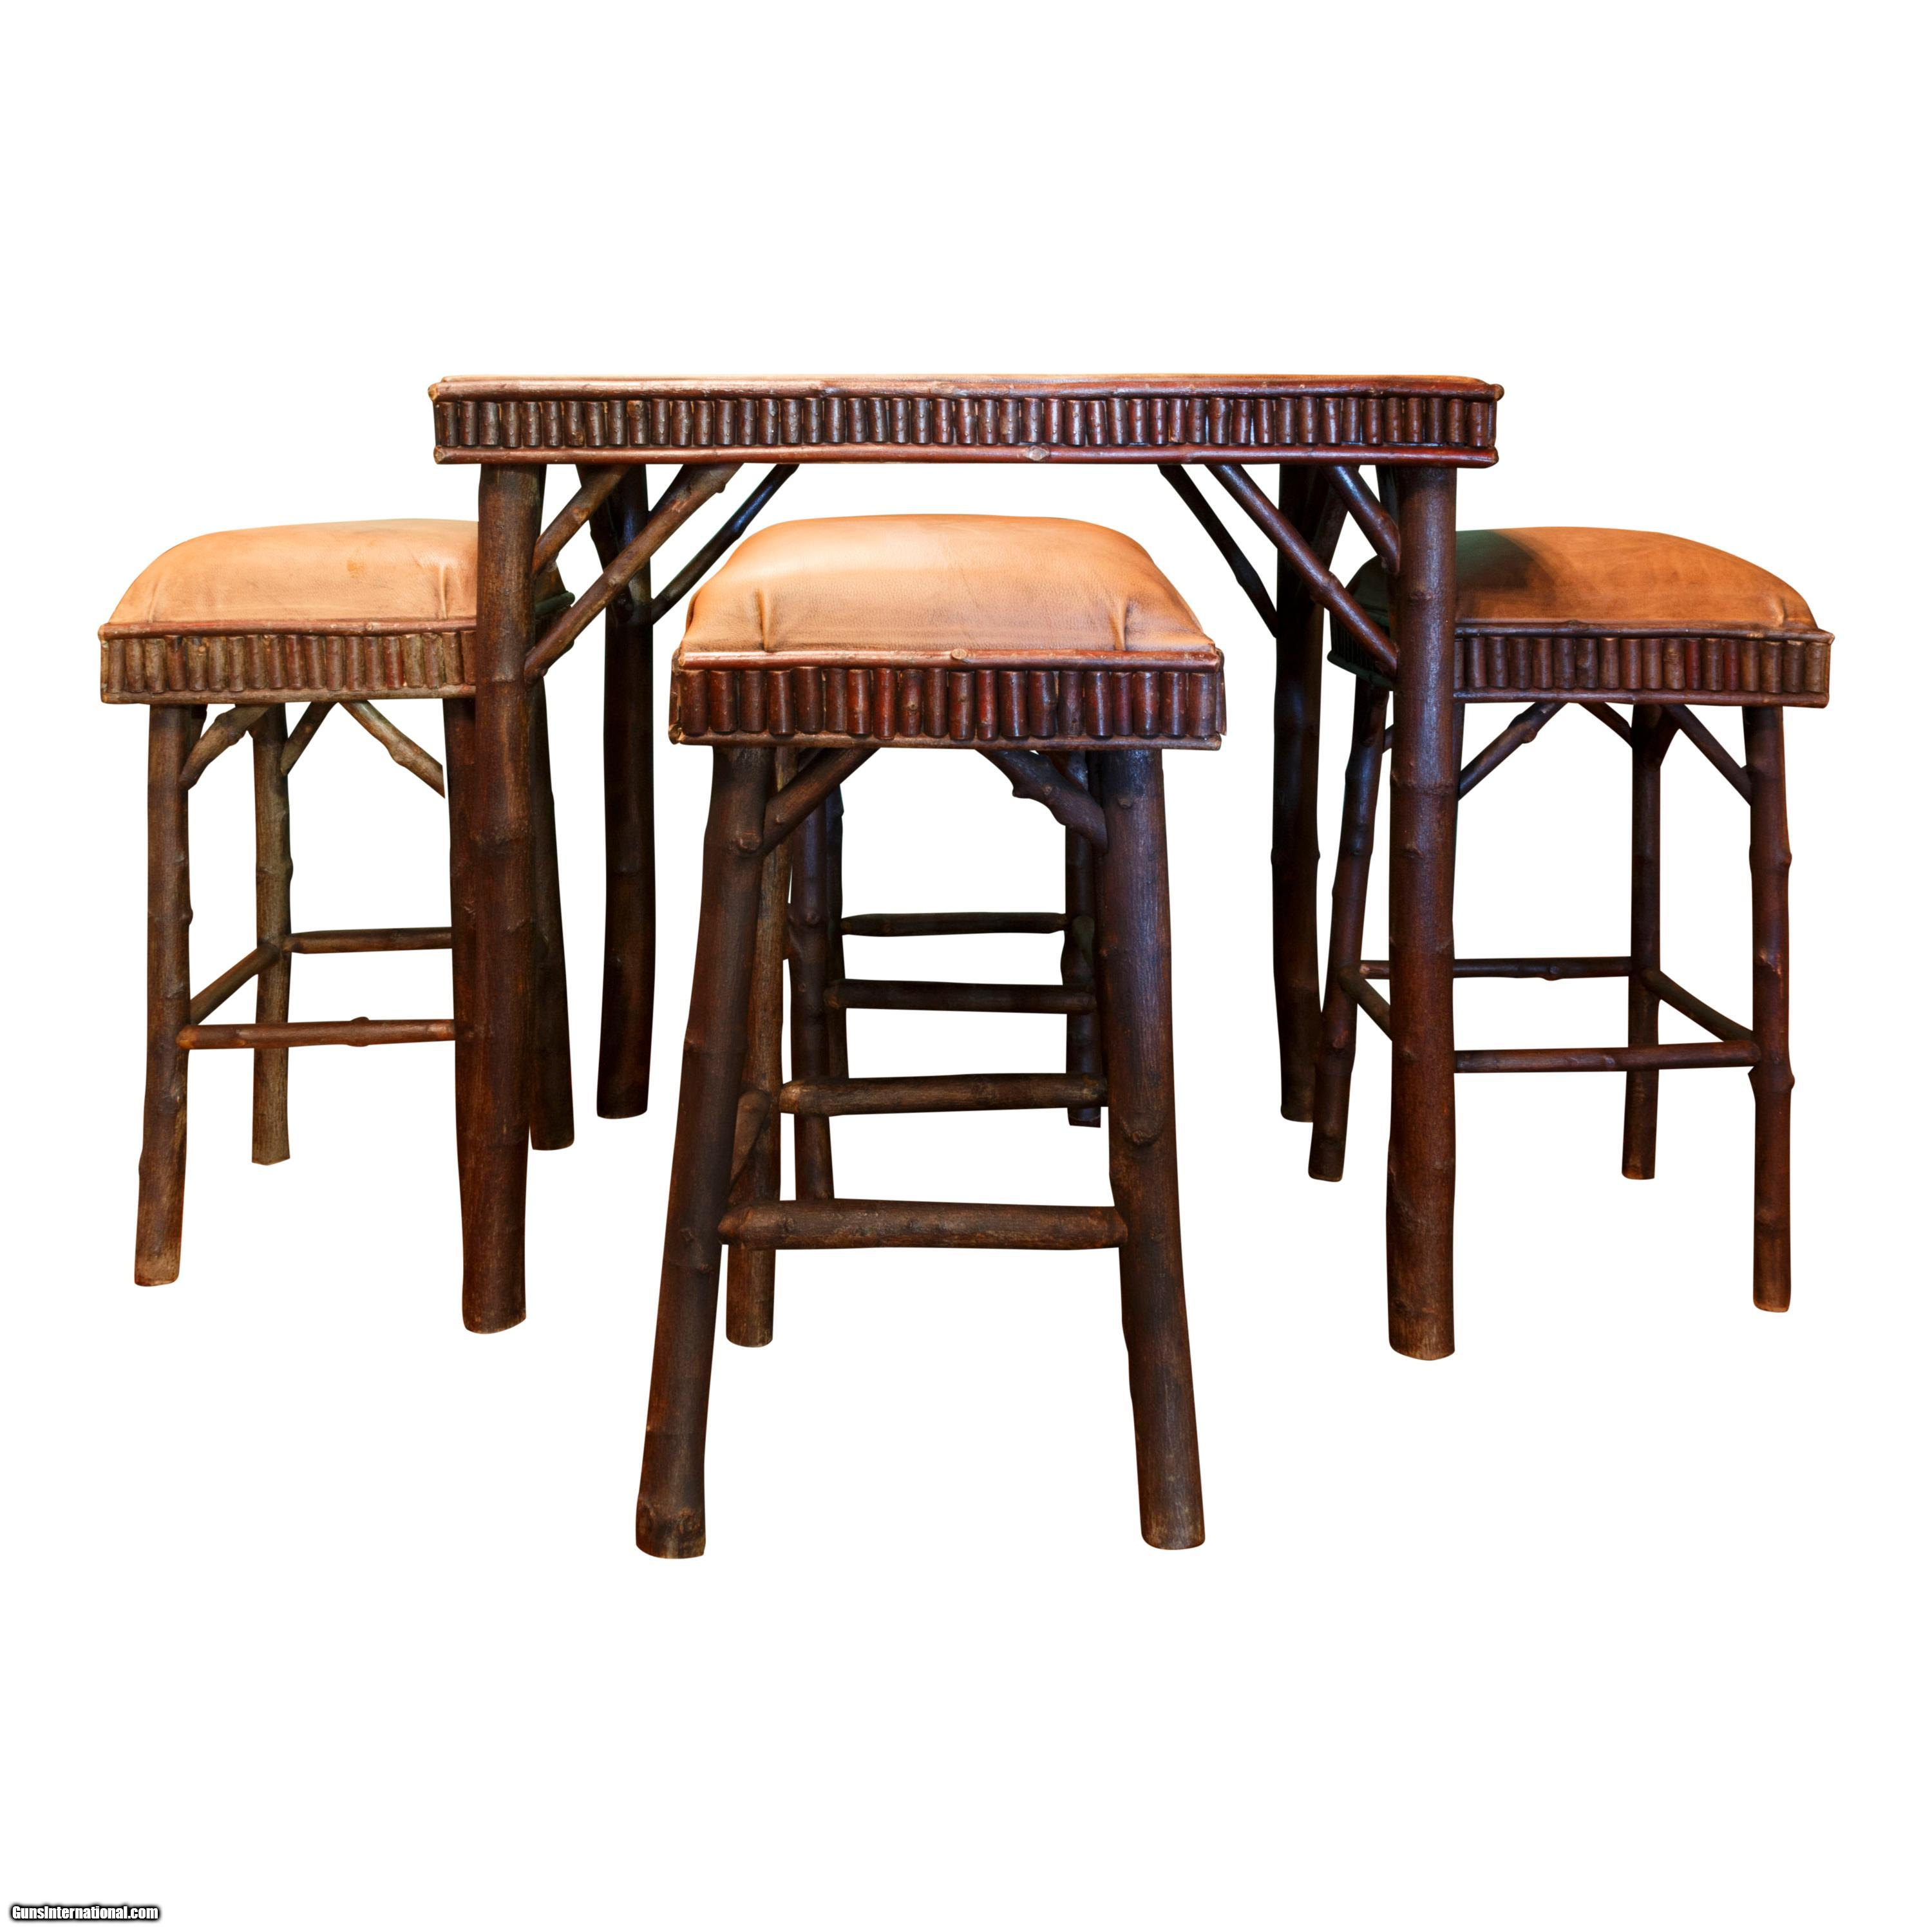 Adirondack Game Table and Chairs